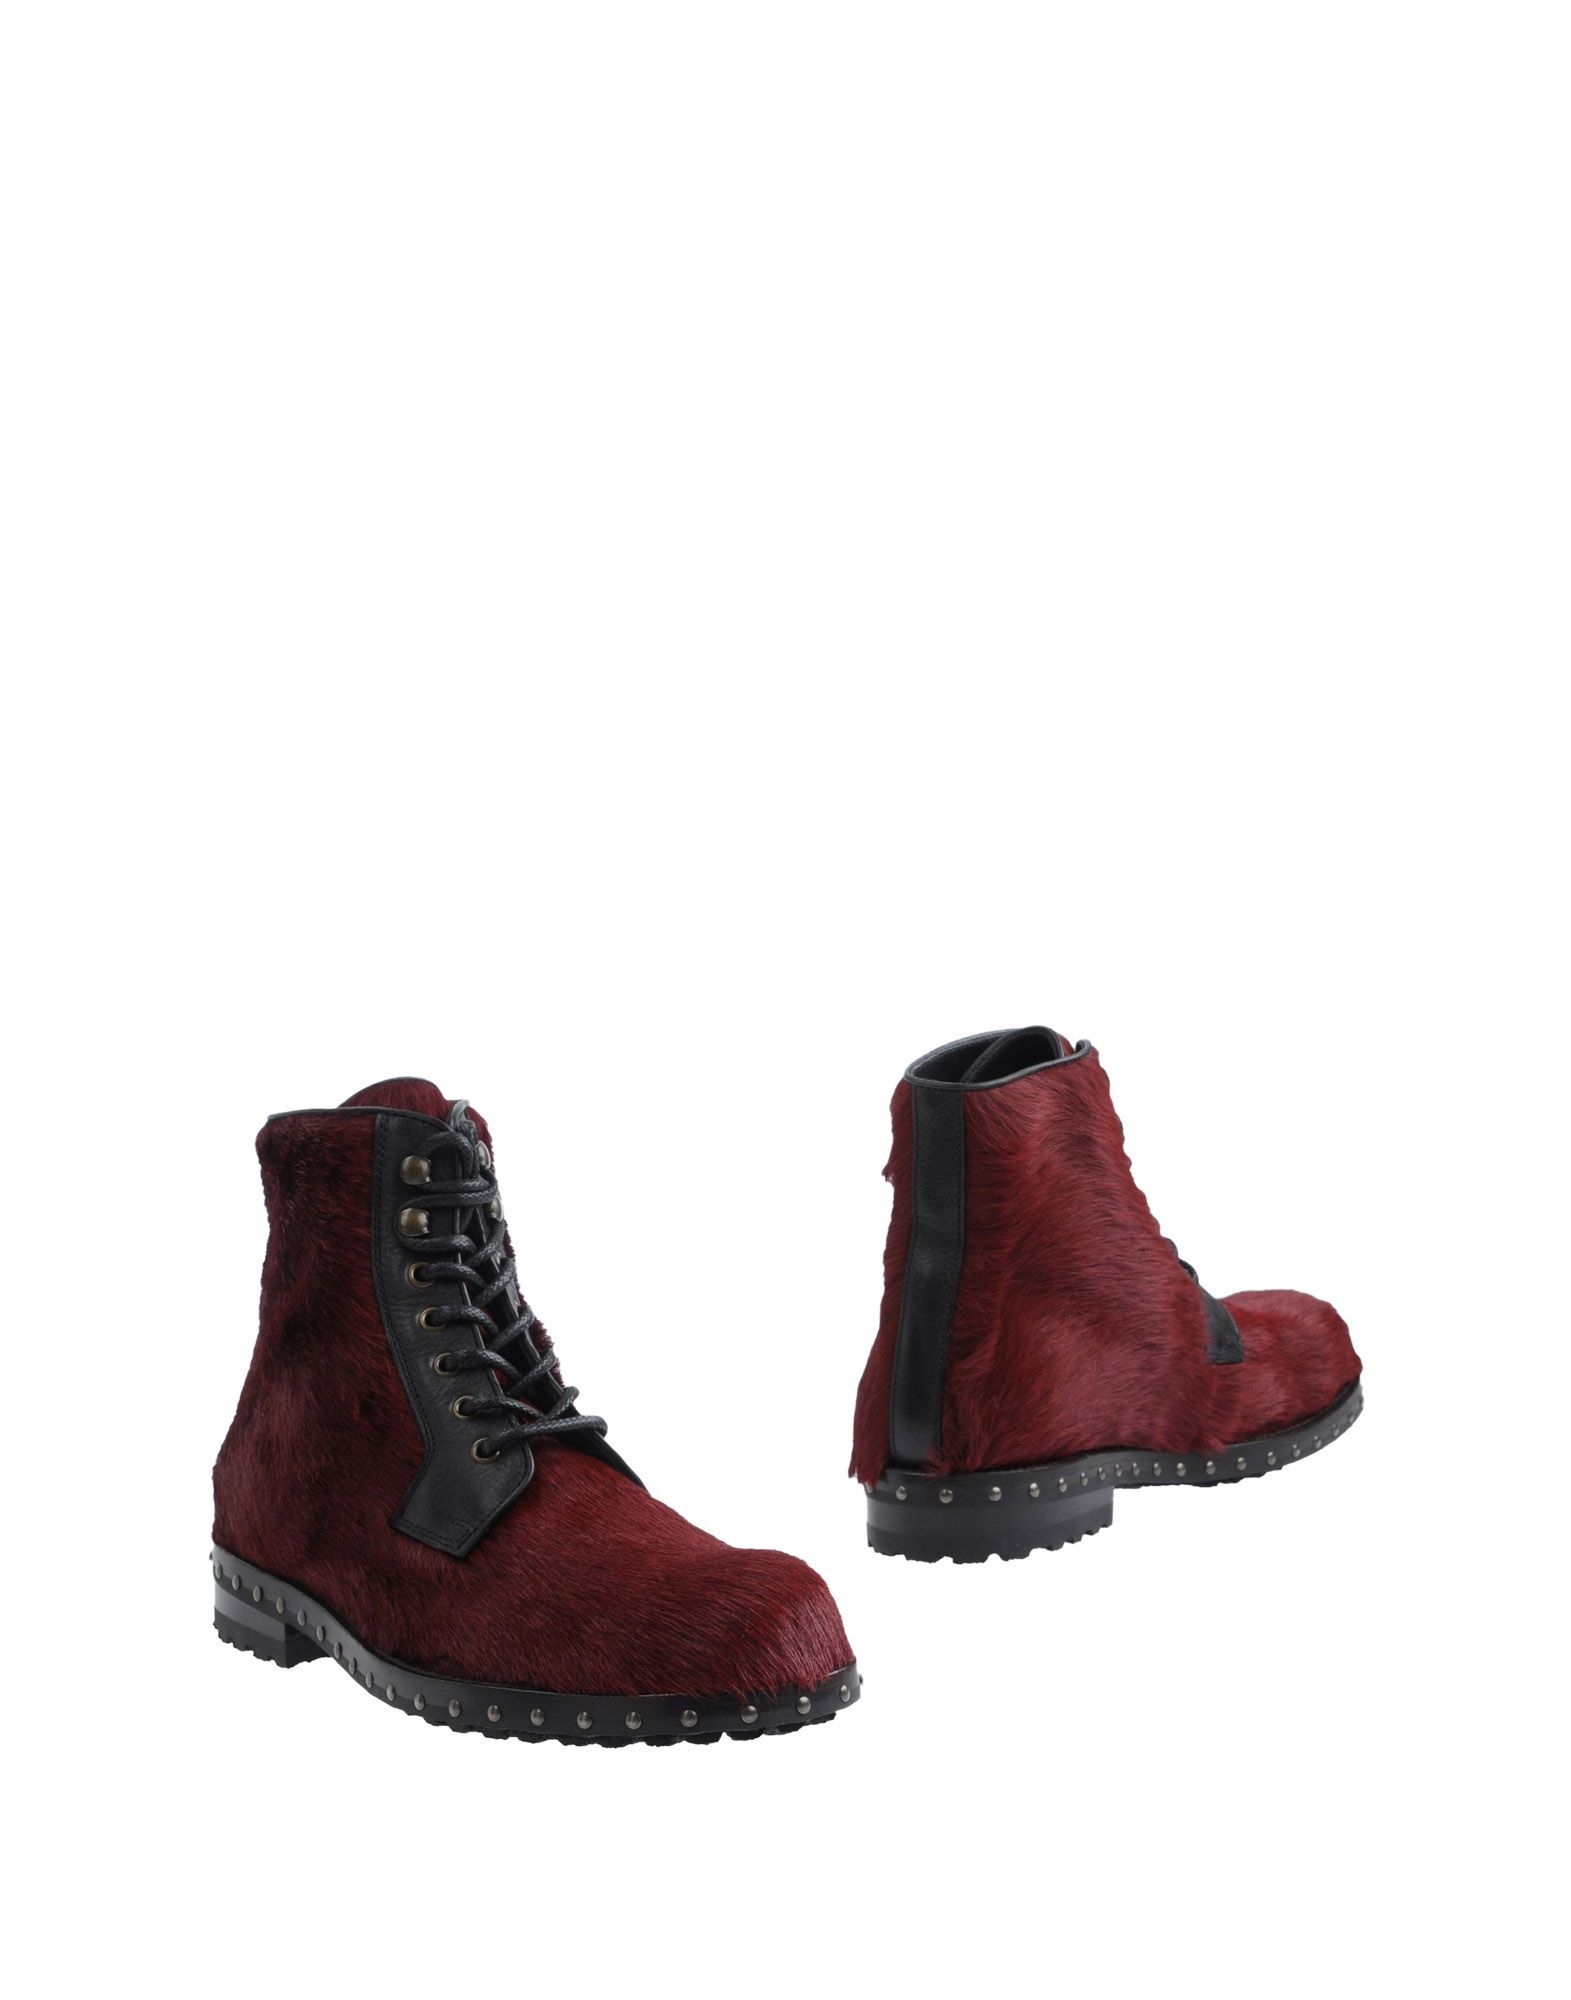 Dolce & Gabbana Maroon Calf Ankle Boots